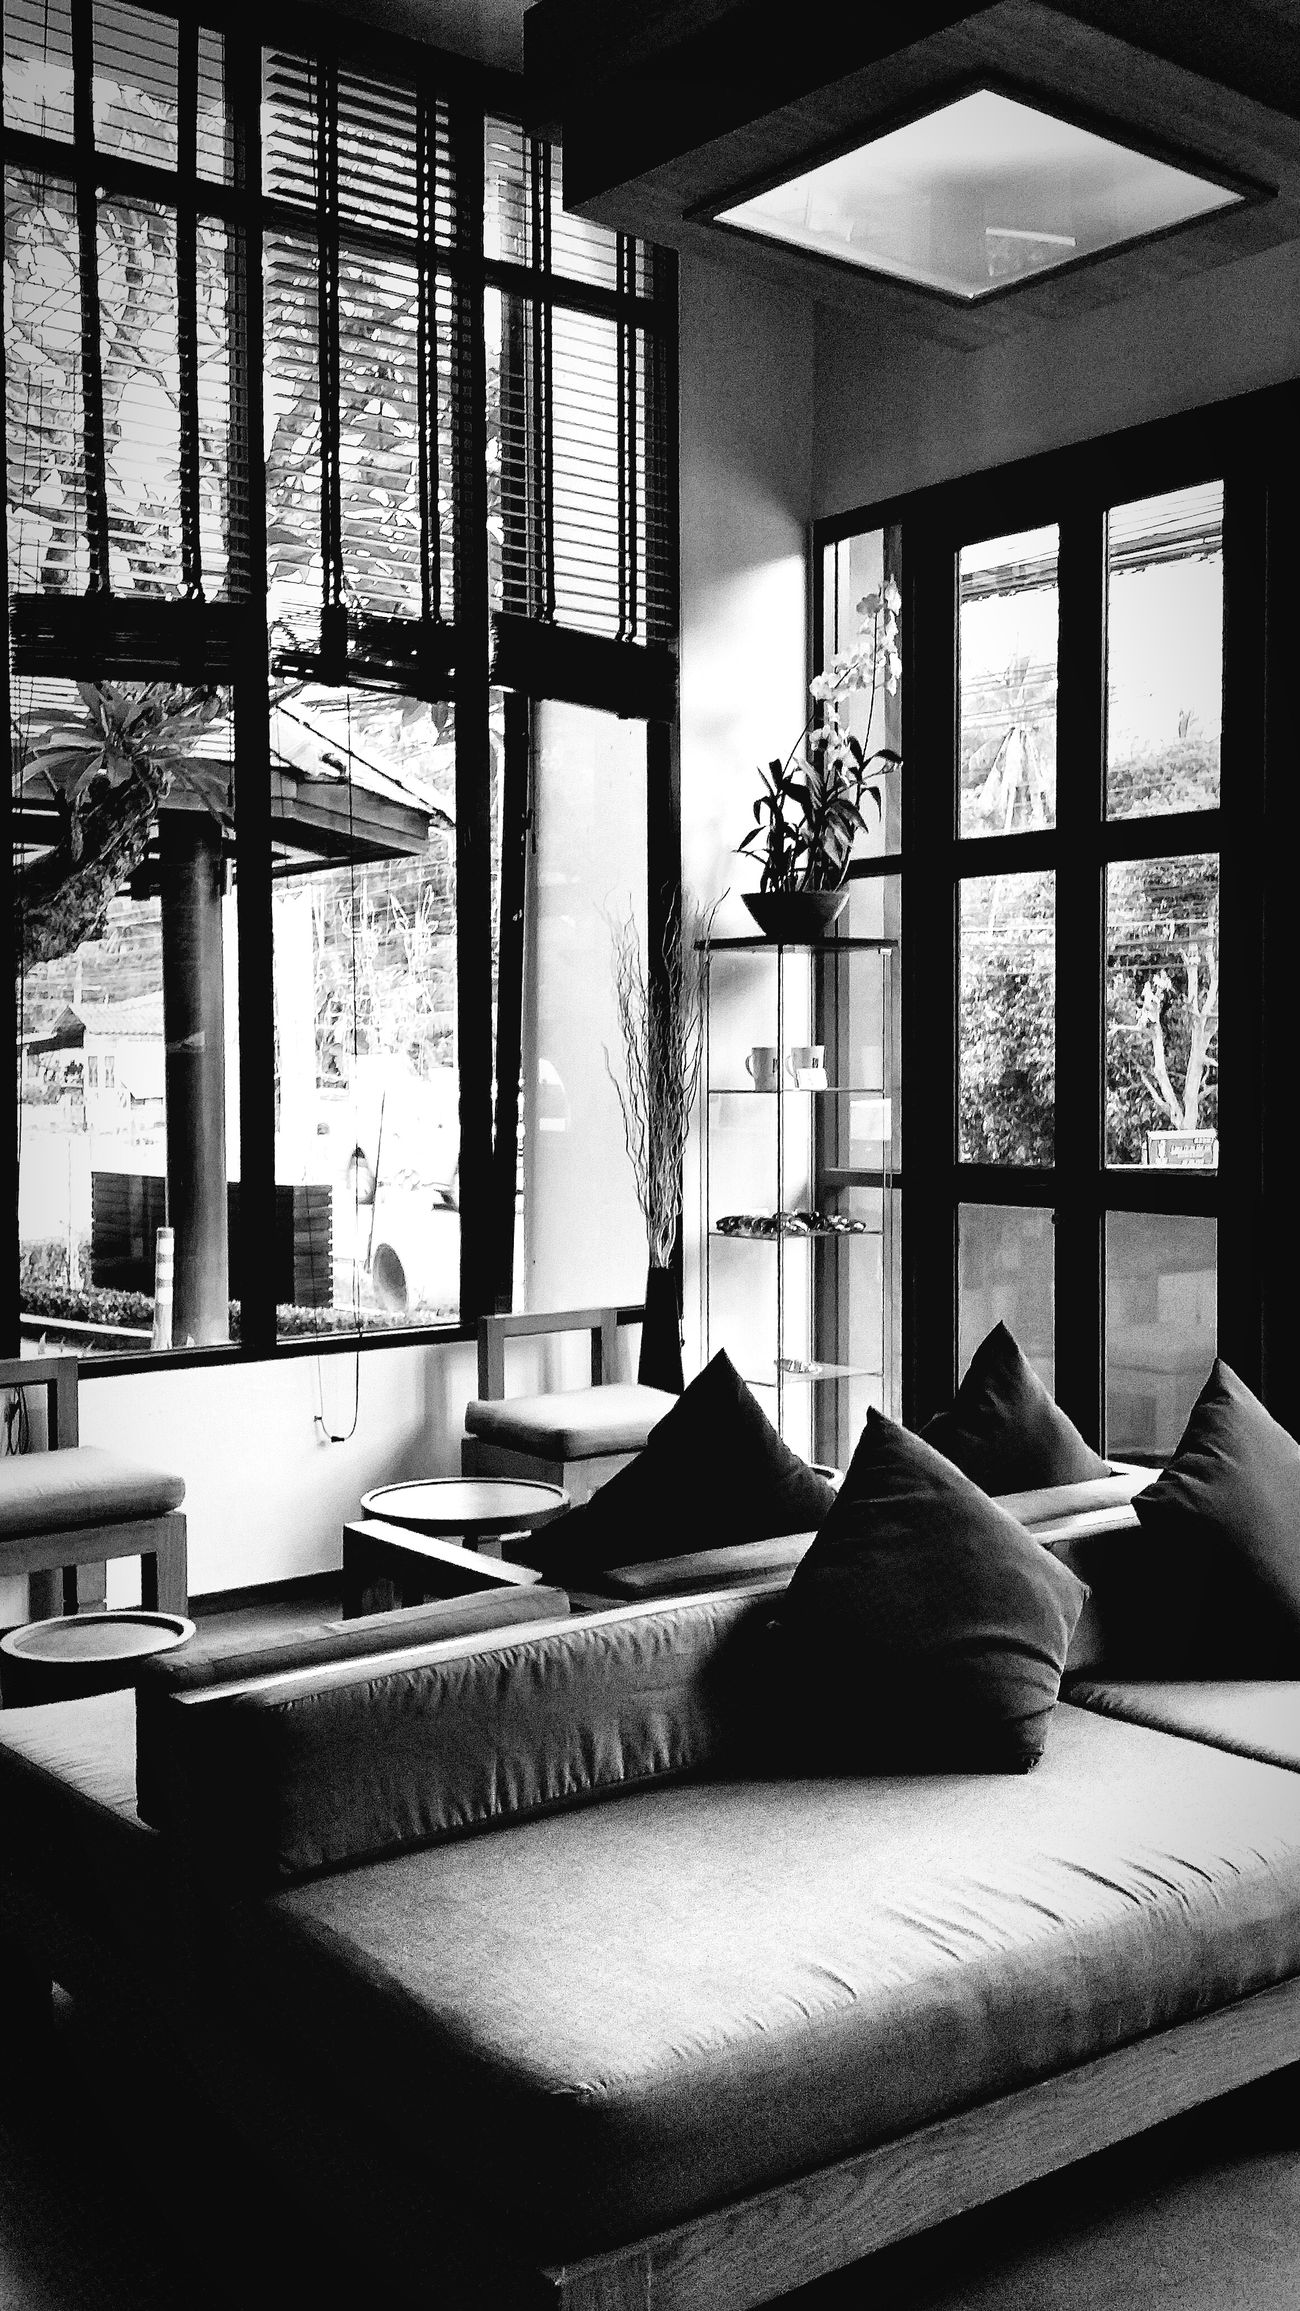 Reception Area Resort Maenam Koh Samui Thailand Travelphotography Eyeemcollection Eyeemphotography Eyeemkohsamui Eyeemthailand Eyeem Travel Bnw Bnwphotography Bnwcollection Bnw_captures Bnw_world Bnw_travel Bnw_kohsamui Bnw_thailand